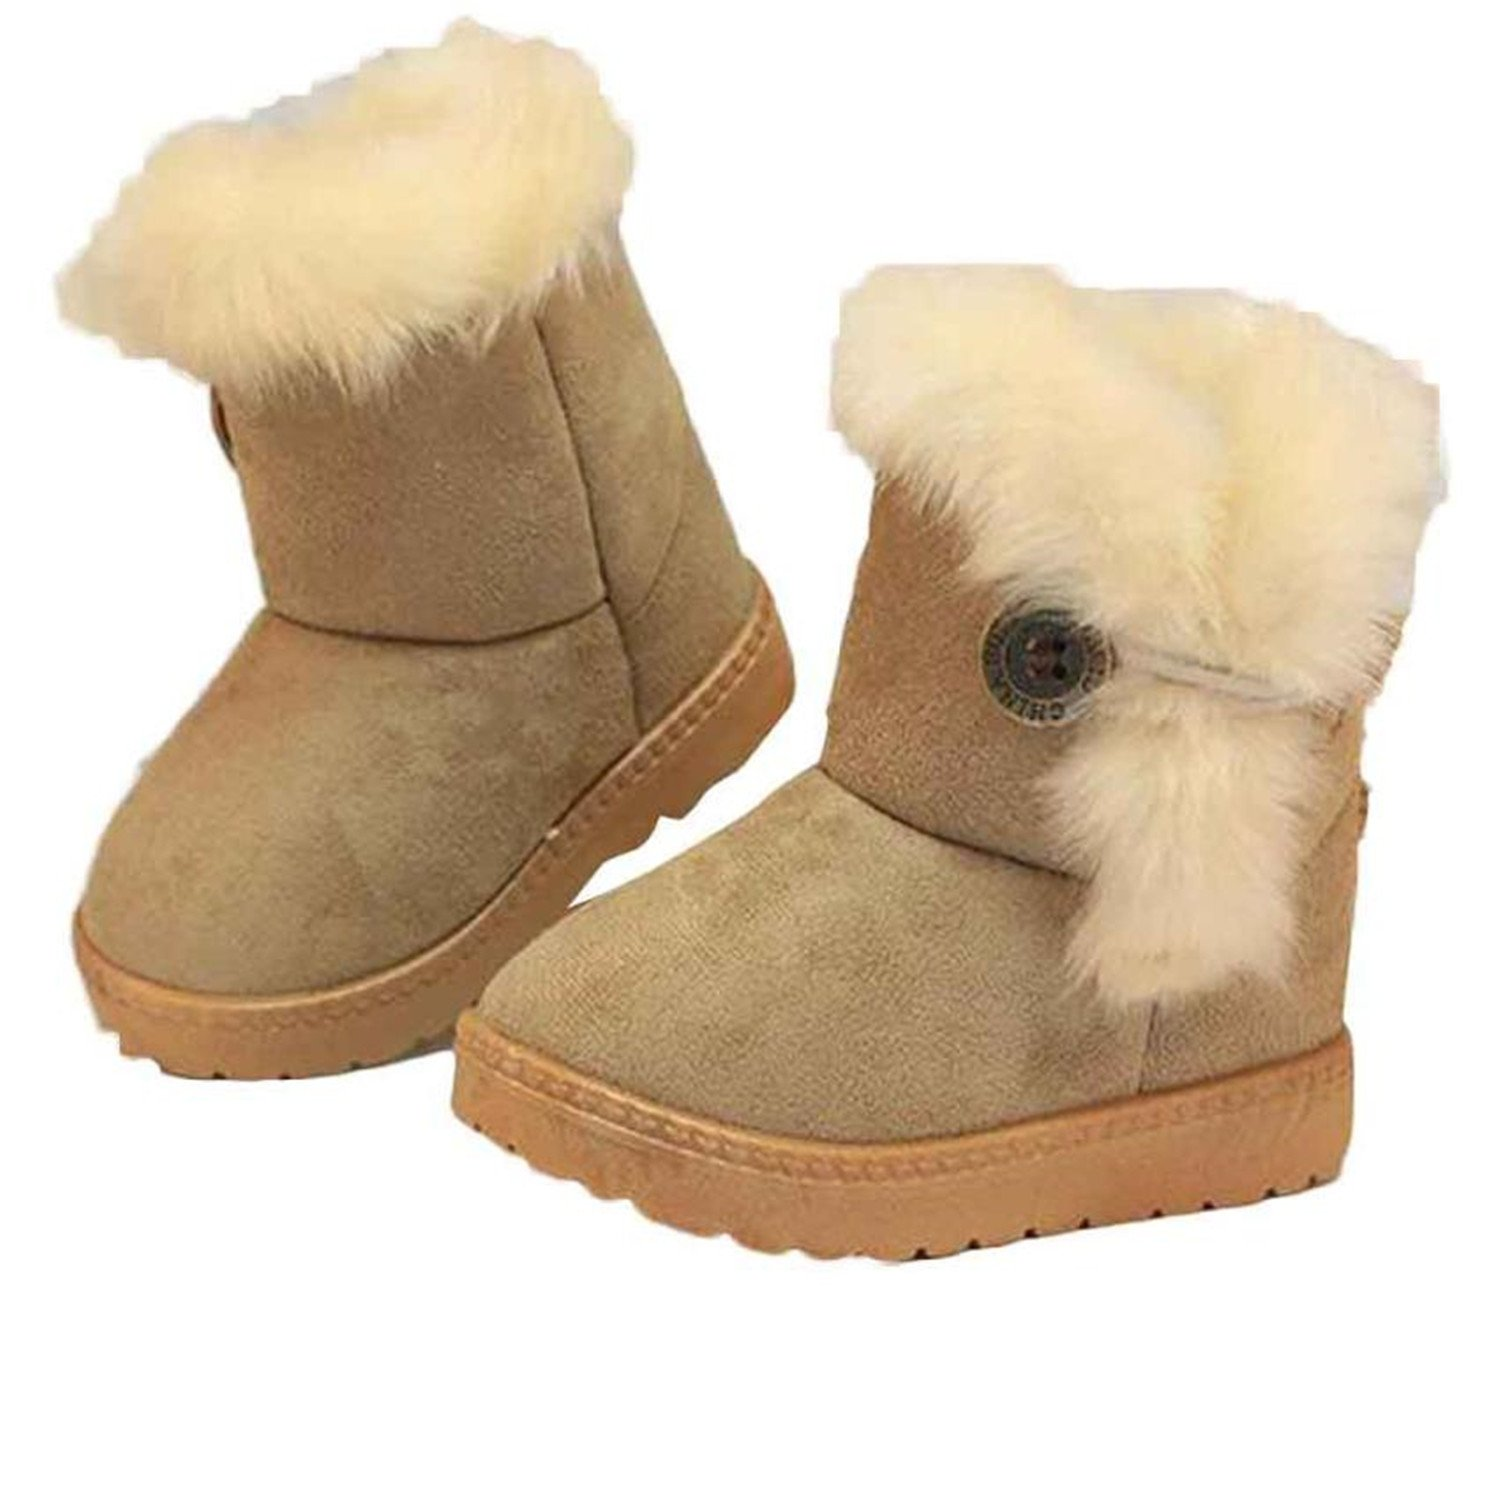 Amazon.com | Baqijian Kids Shoes Winter Warm Ankle Boy Girls Boots Rubber Toddler Booties Khaki Pink Snow Boot | Boots